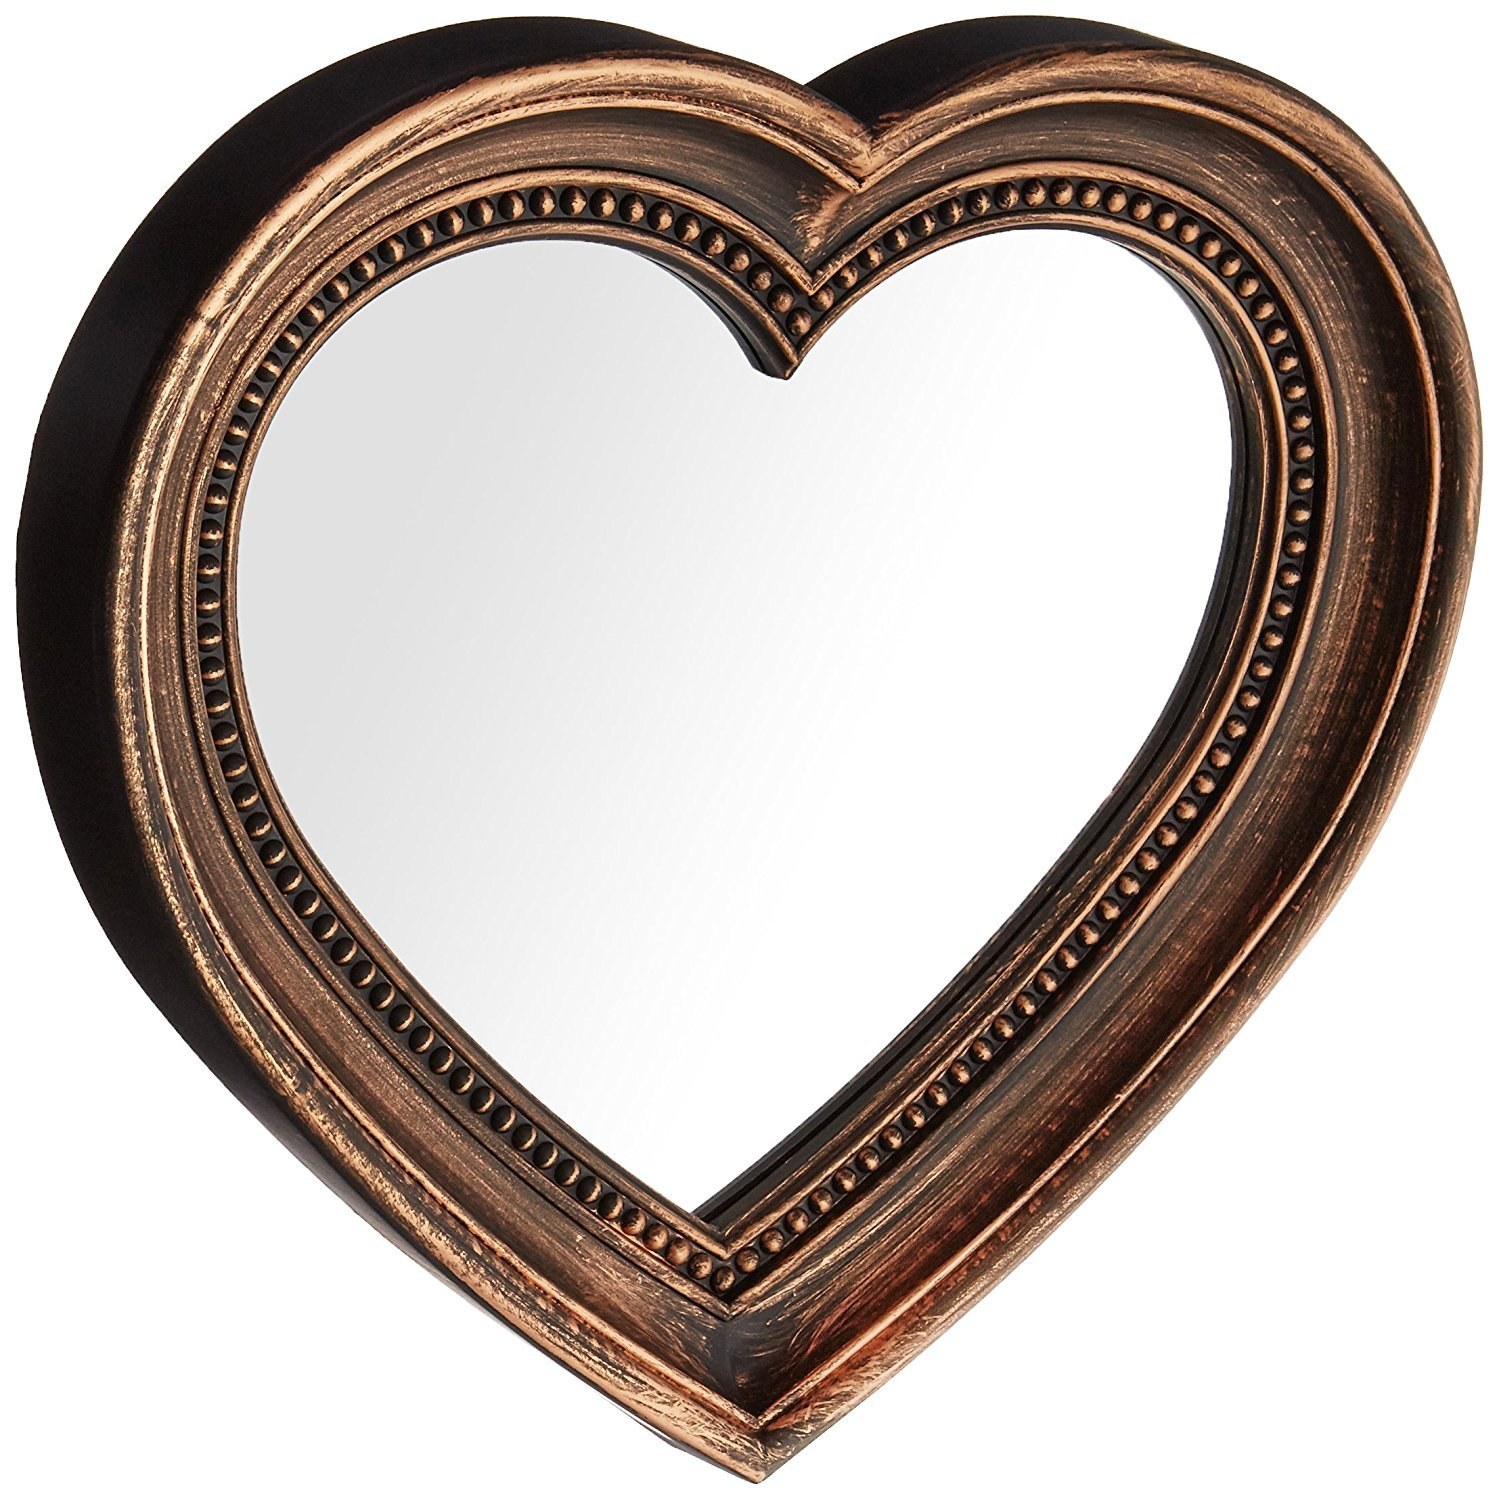 Angel's Treasure 13'' x 12'' Heart Shaped Wall Mounted Mirror, Vintage Antique Bronze Style